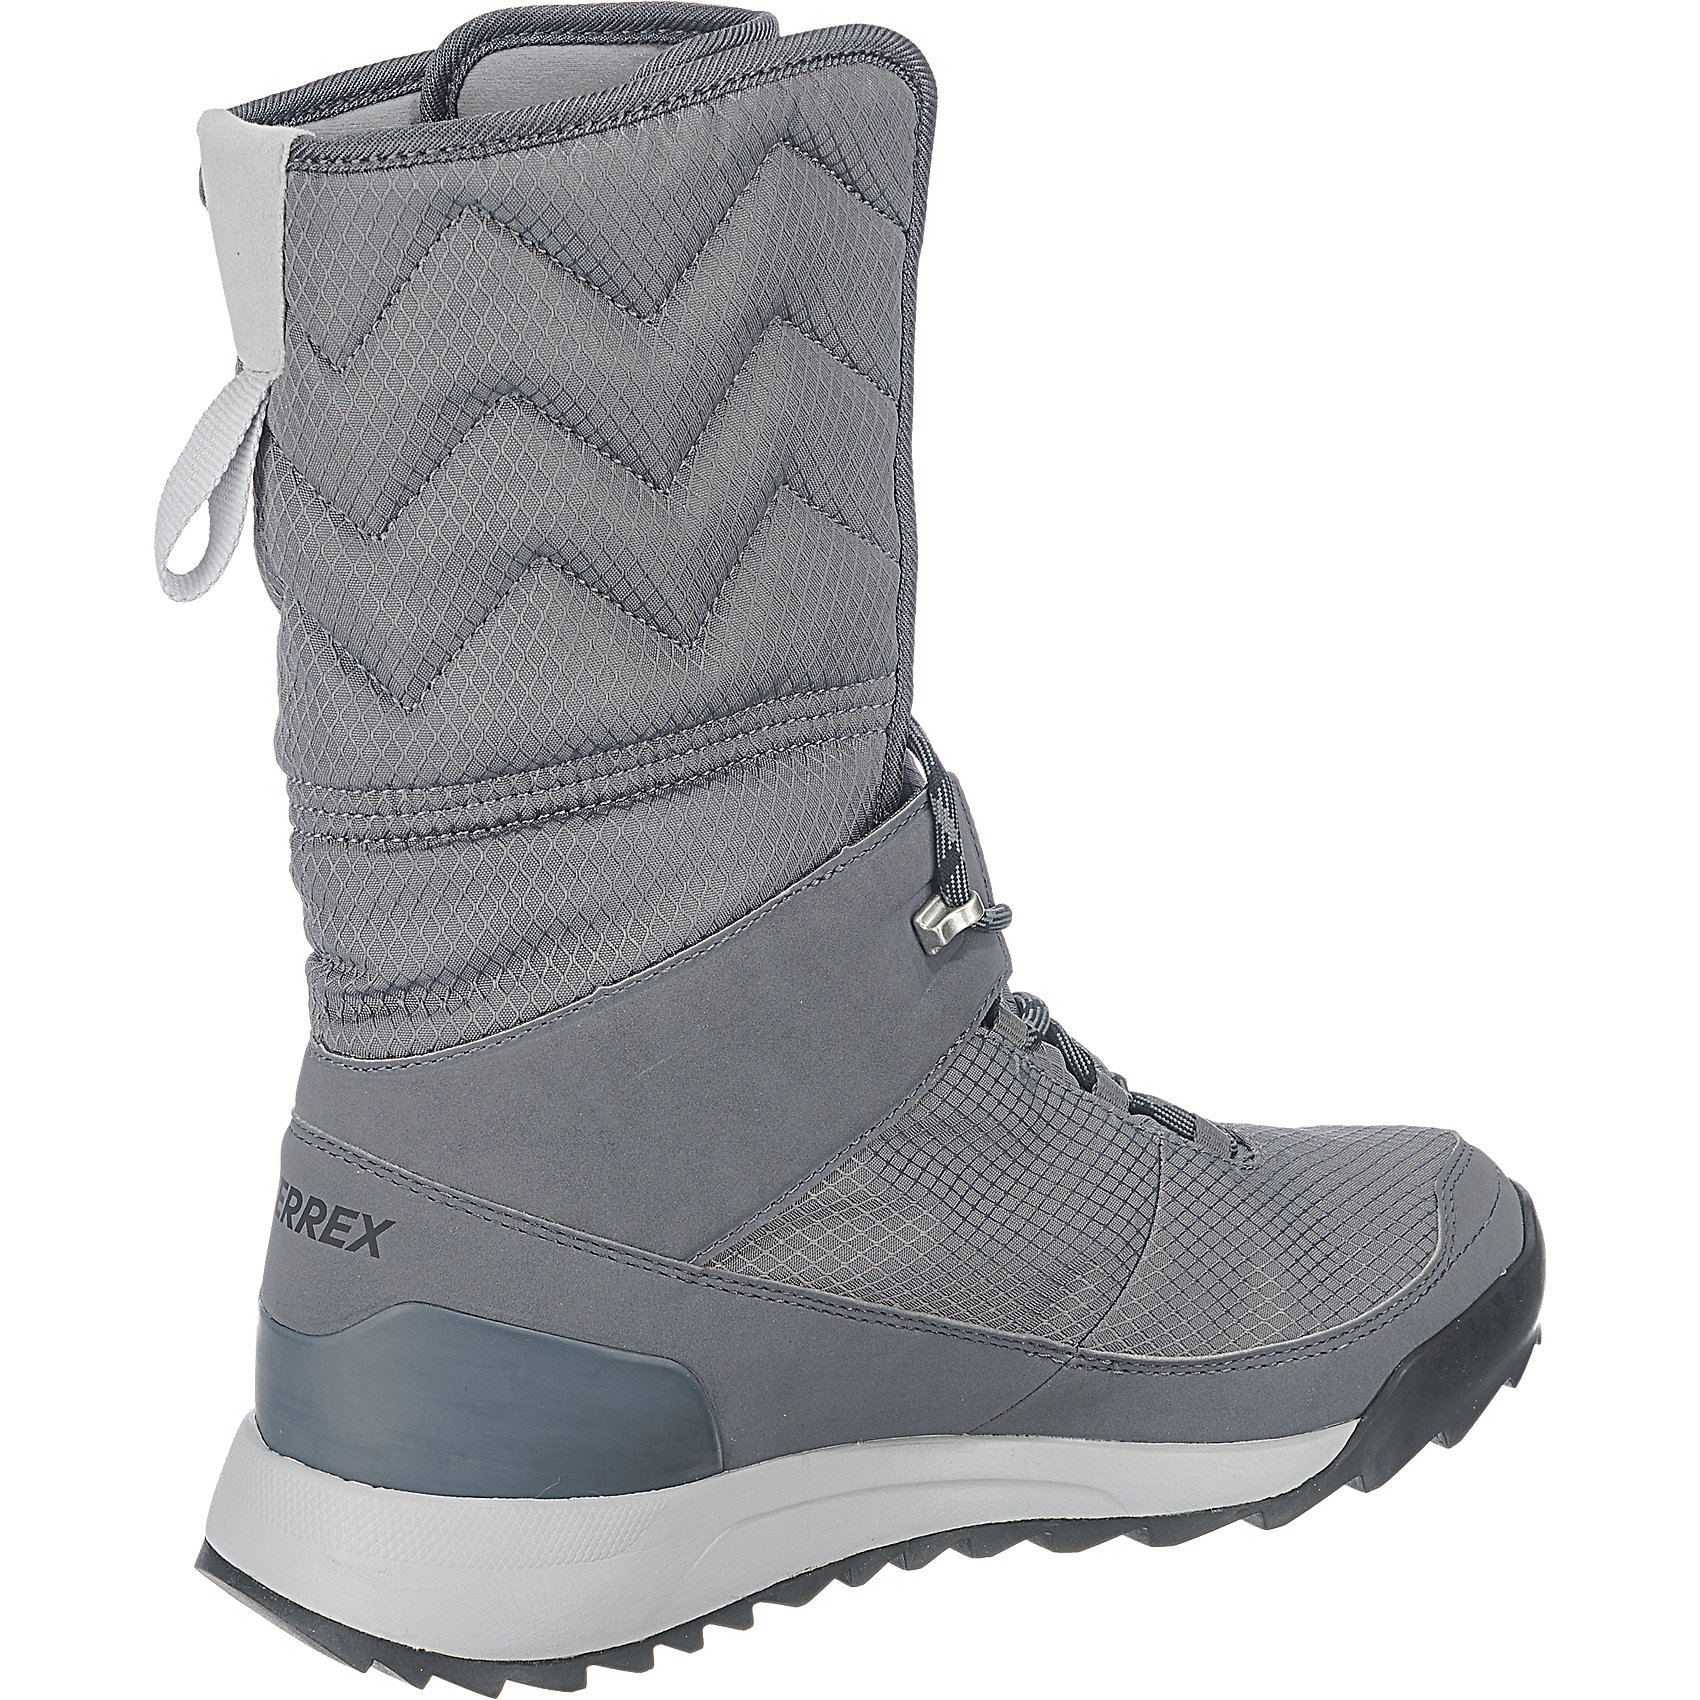 reputable site b751a 11f3e Neu-adidas-Performance-Terrex-Choleah-High-Cp-Stiefel-